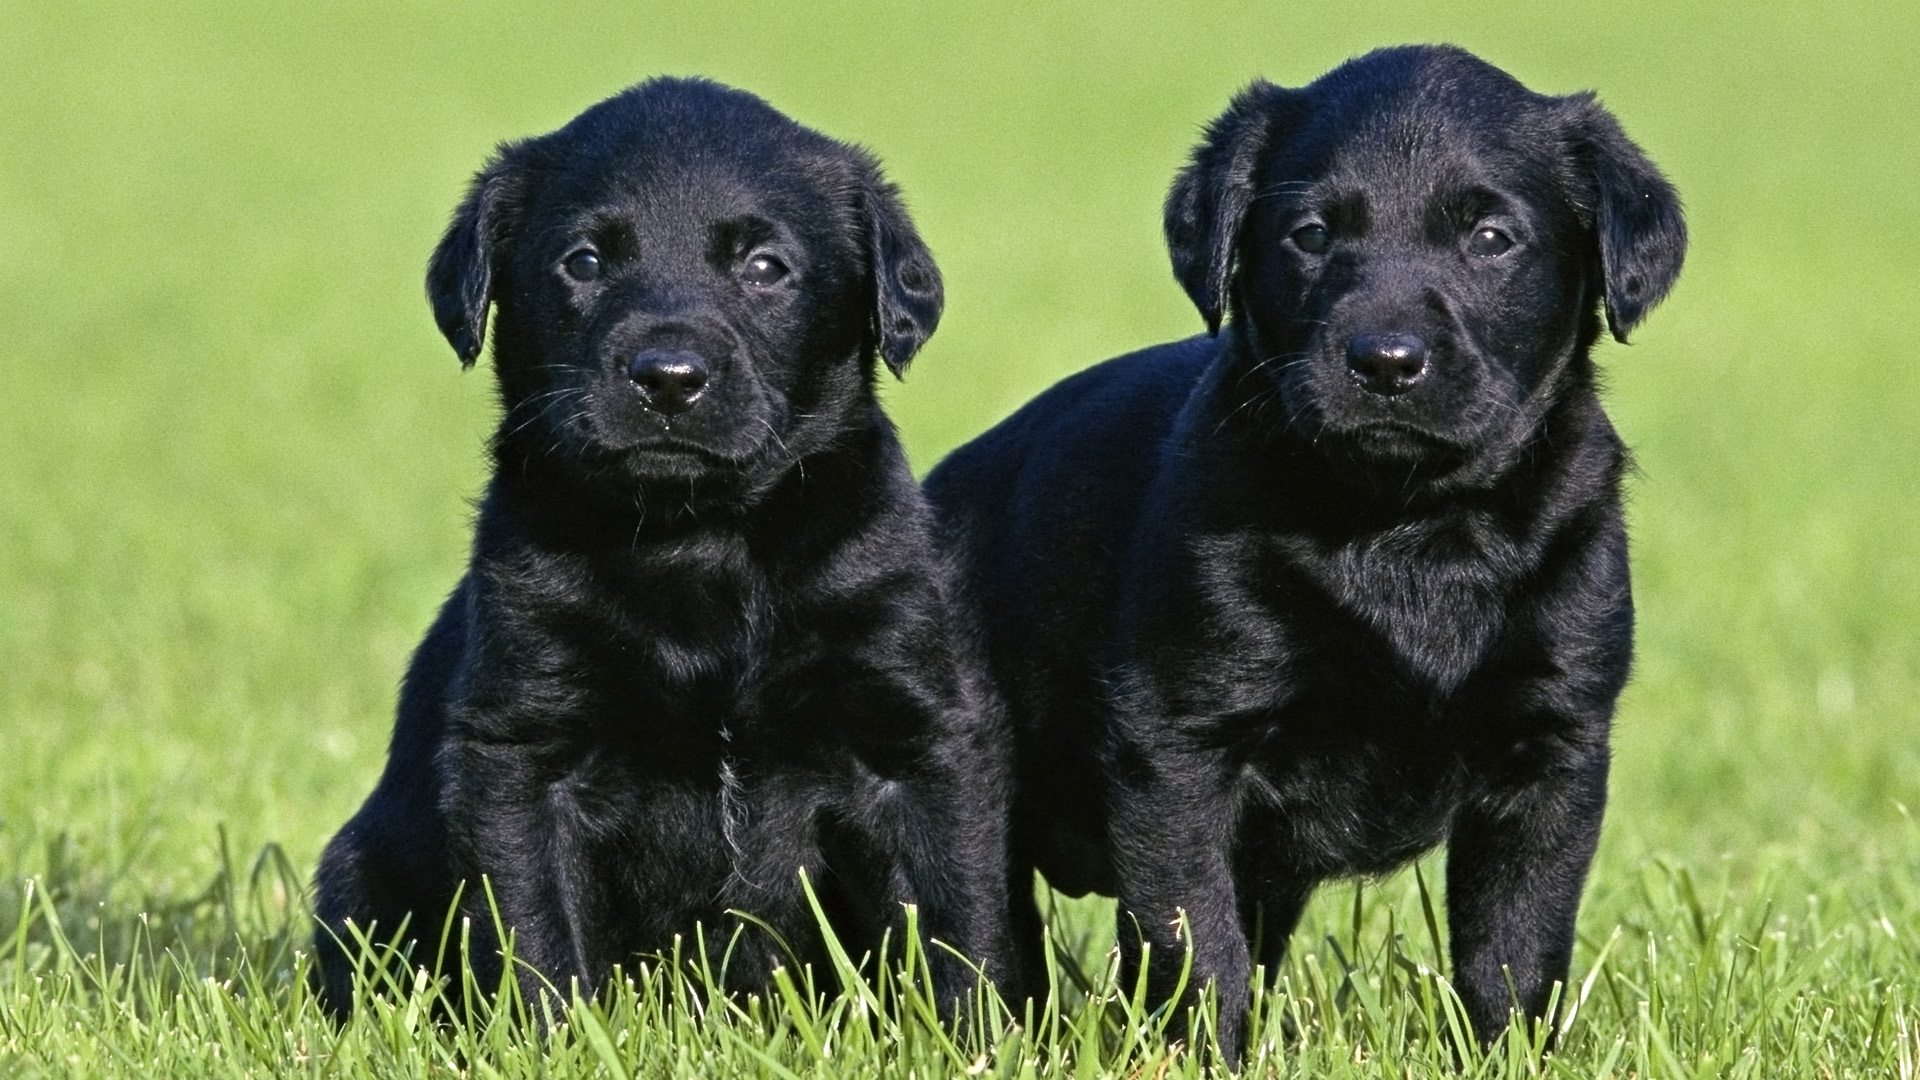 Cute Black Lab Wallpaper